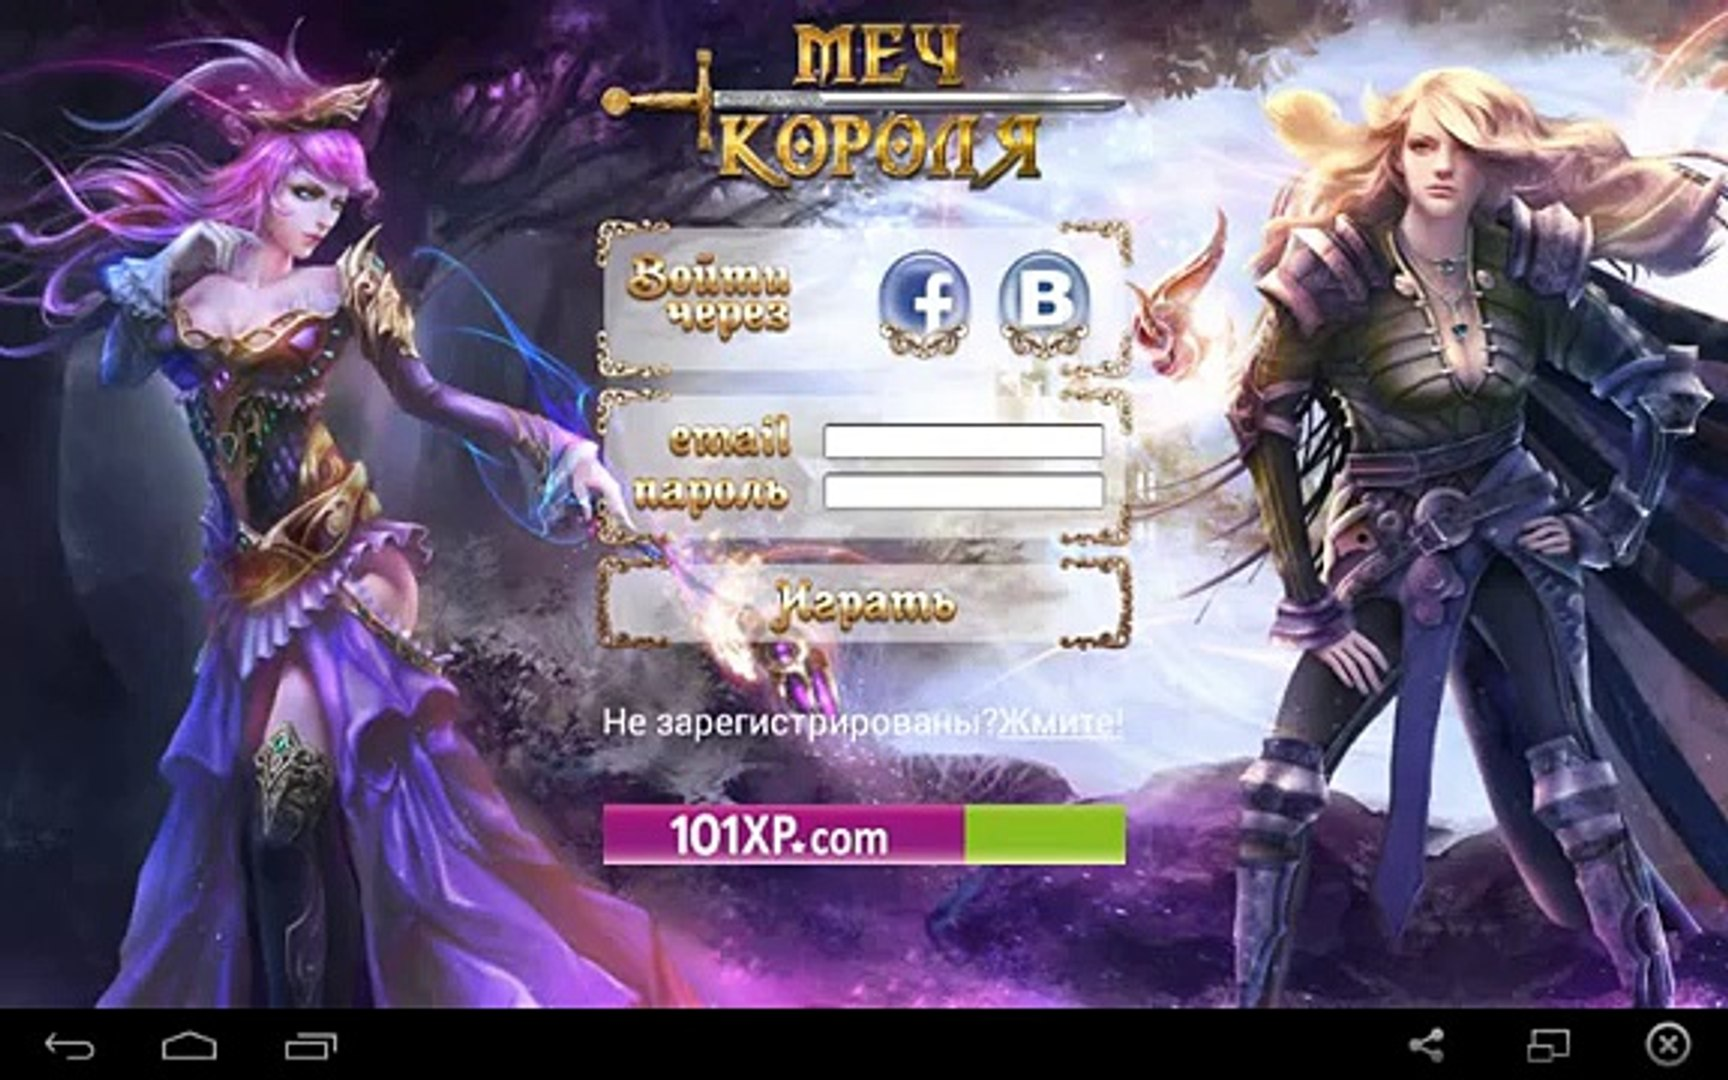 Sword of the King / Меч короля for Android GamePlay